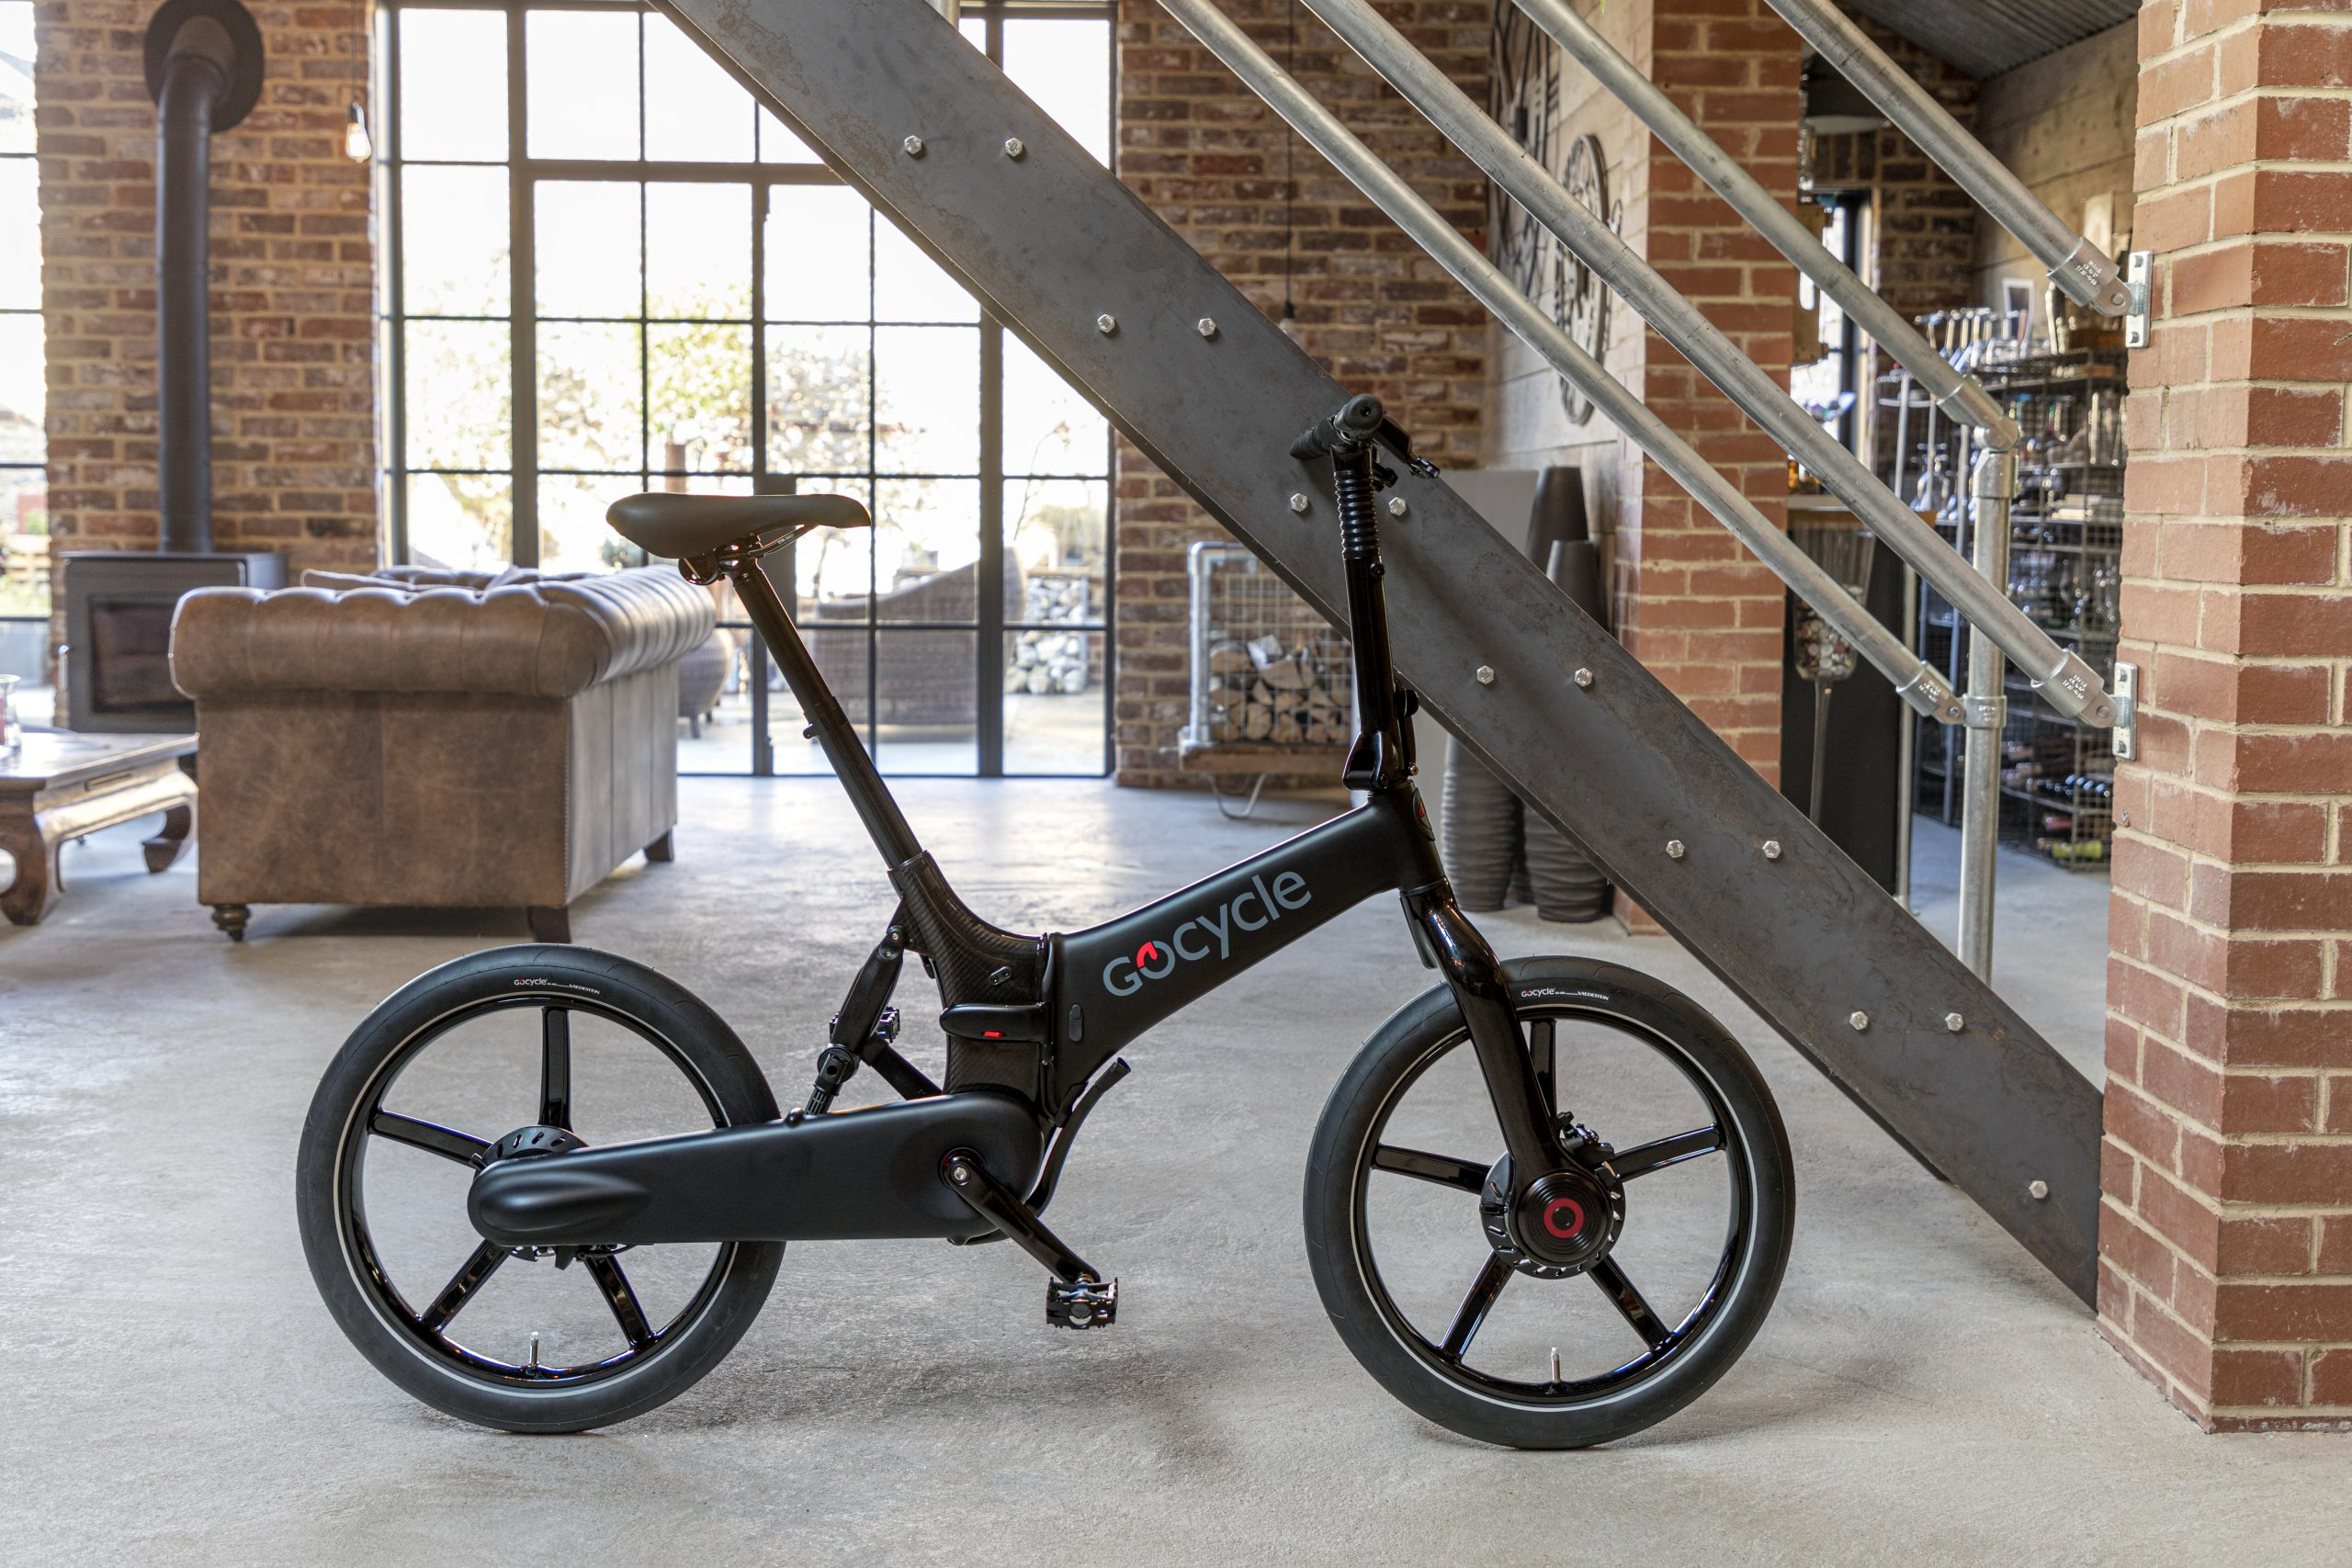 GoCycle GXi | The Garage OTR